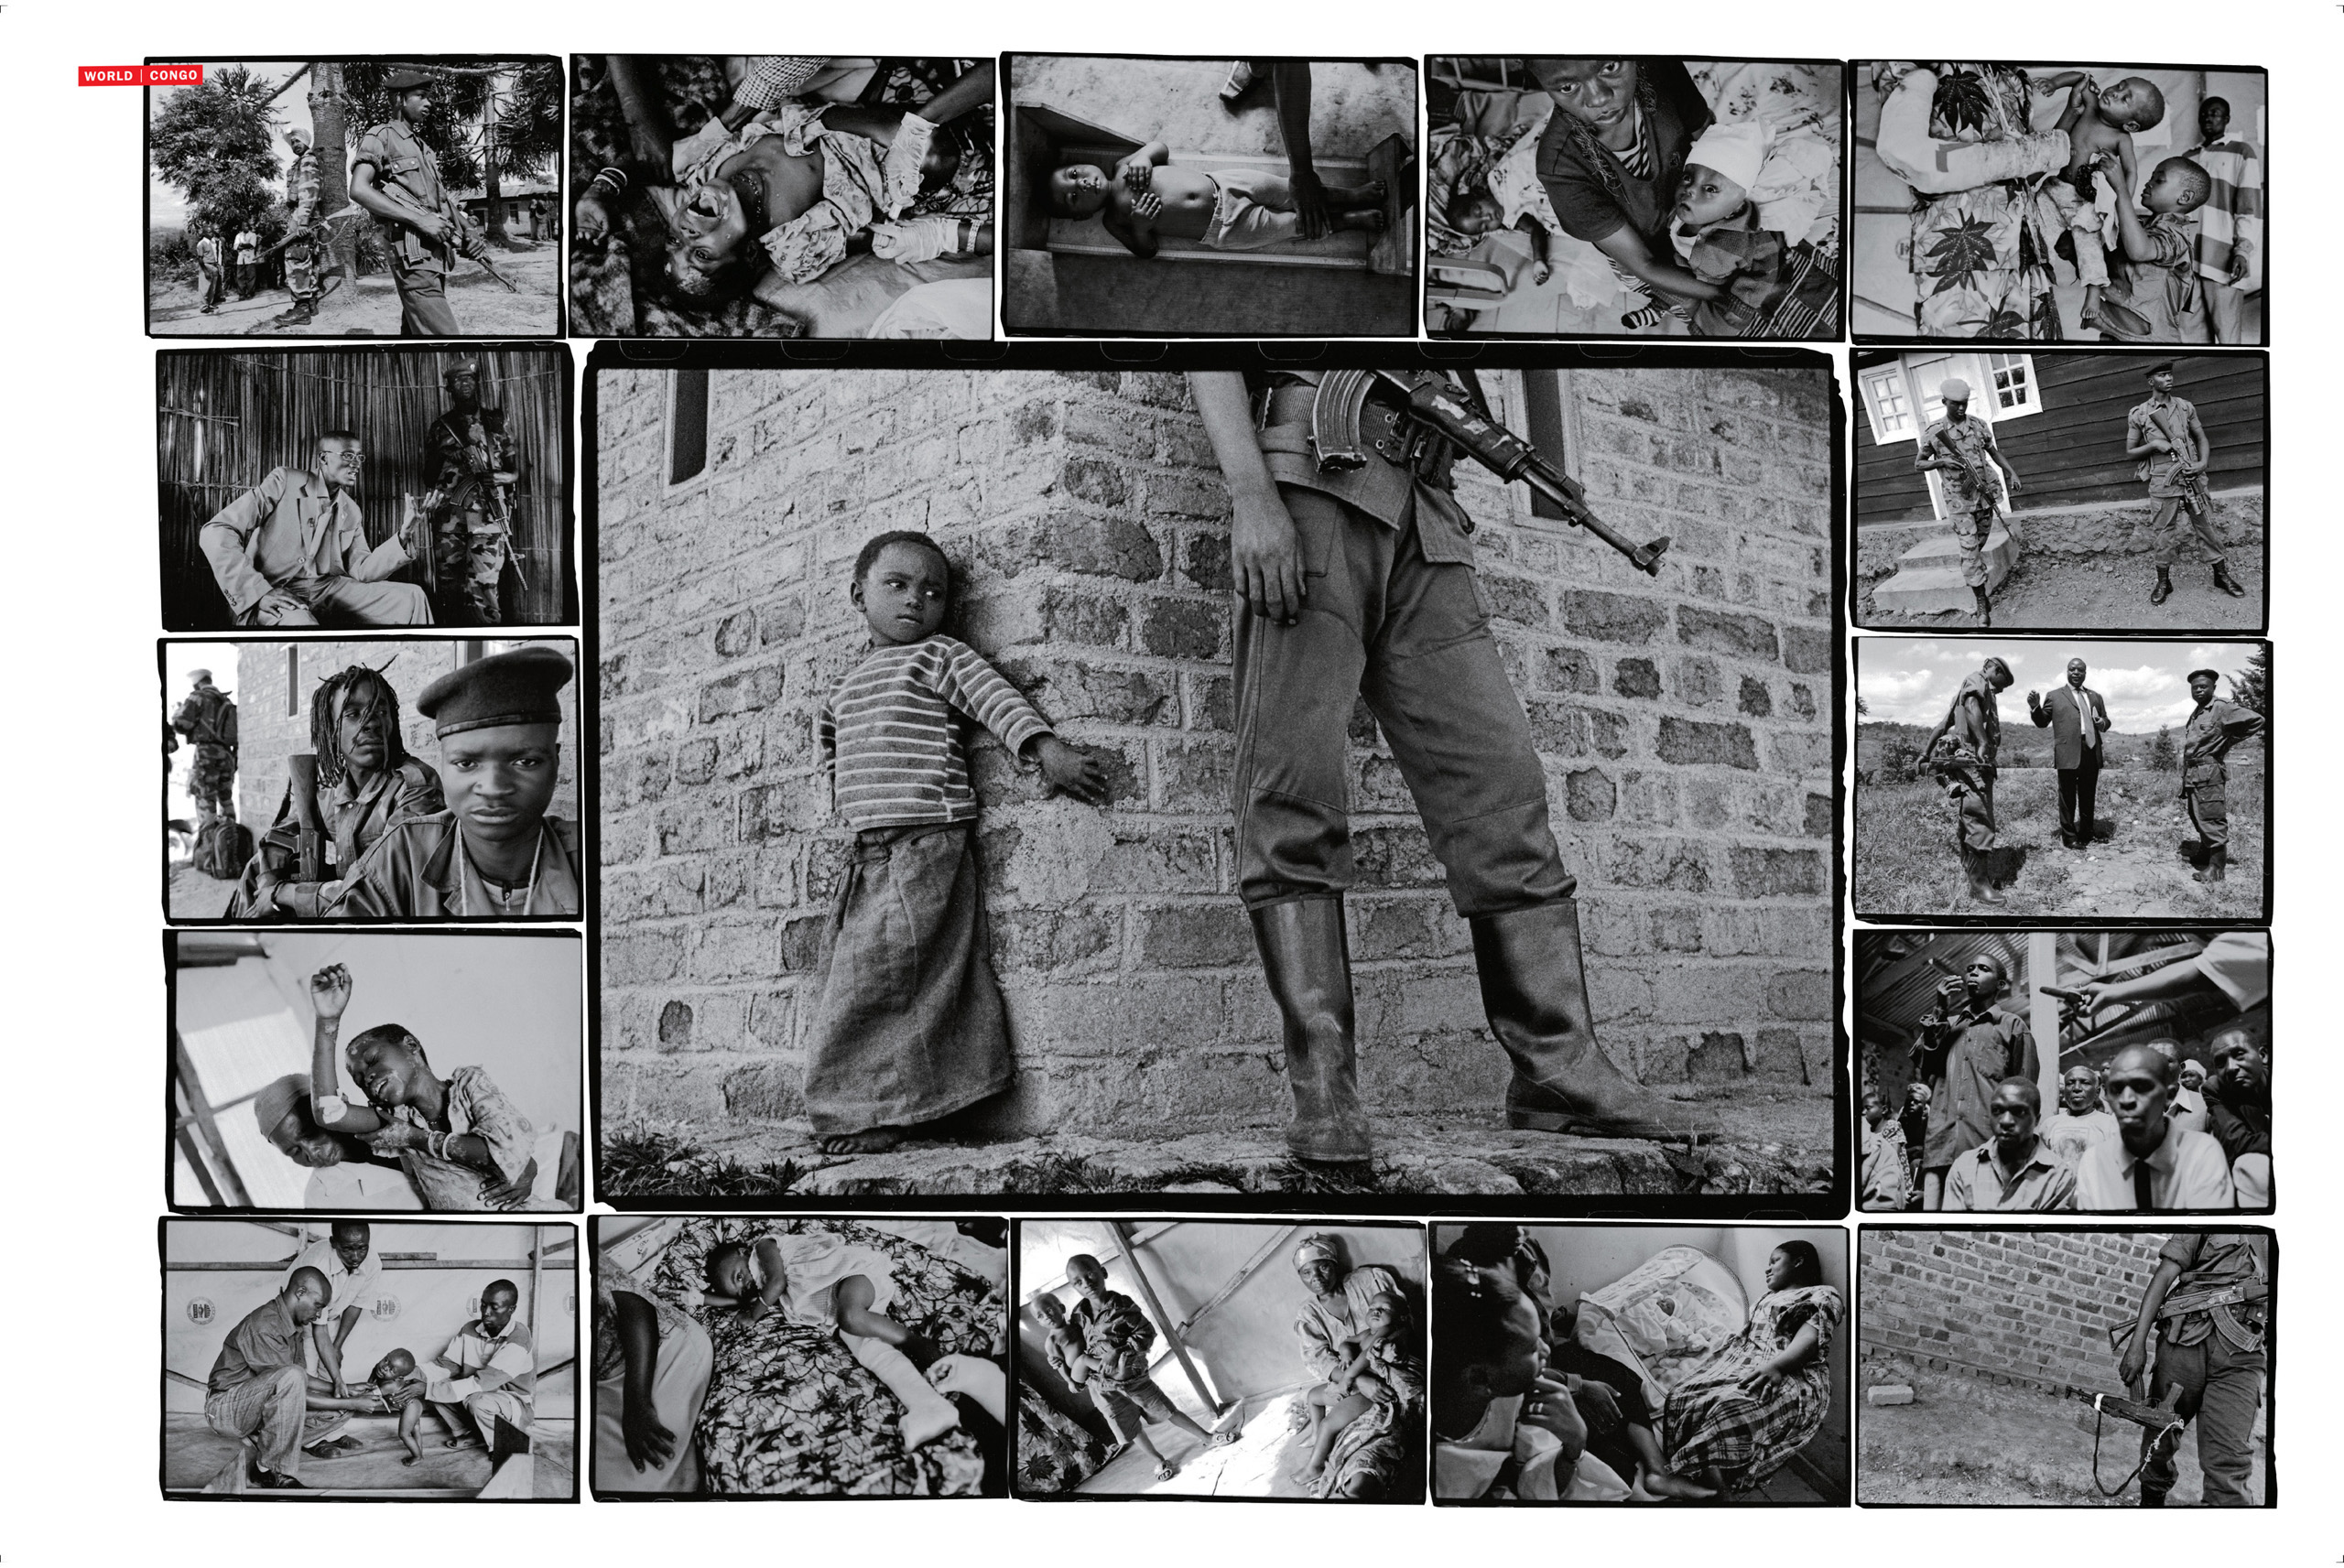 Another montage from the magazine, Here, the center image shows a young girl watching a guerrilla fighter.